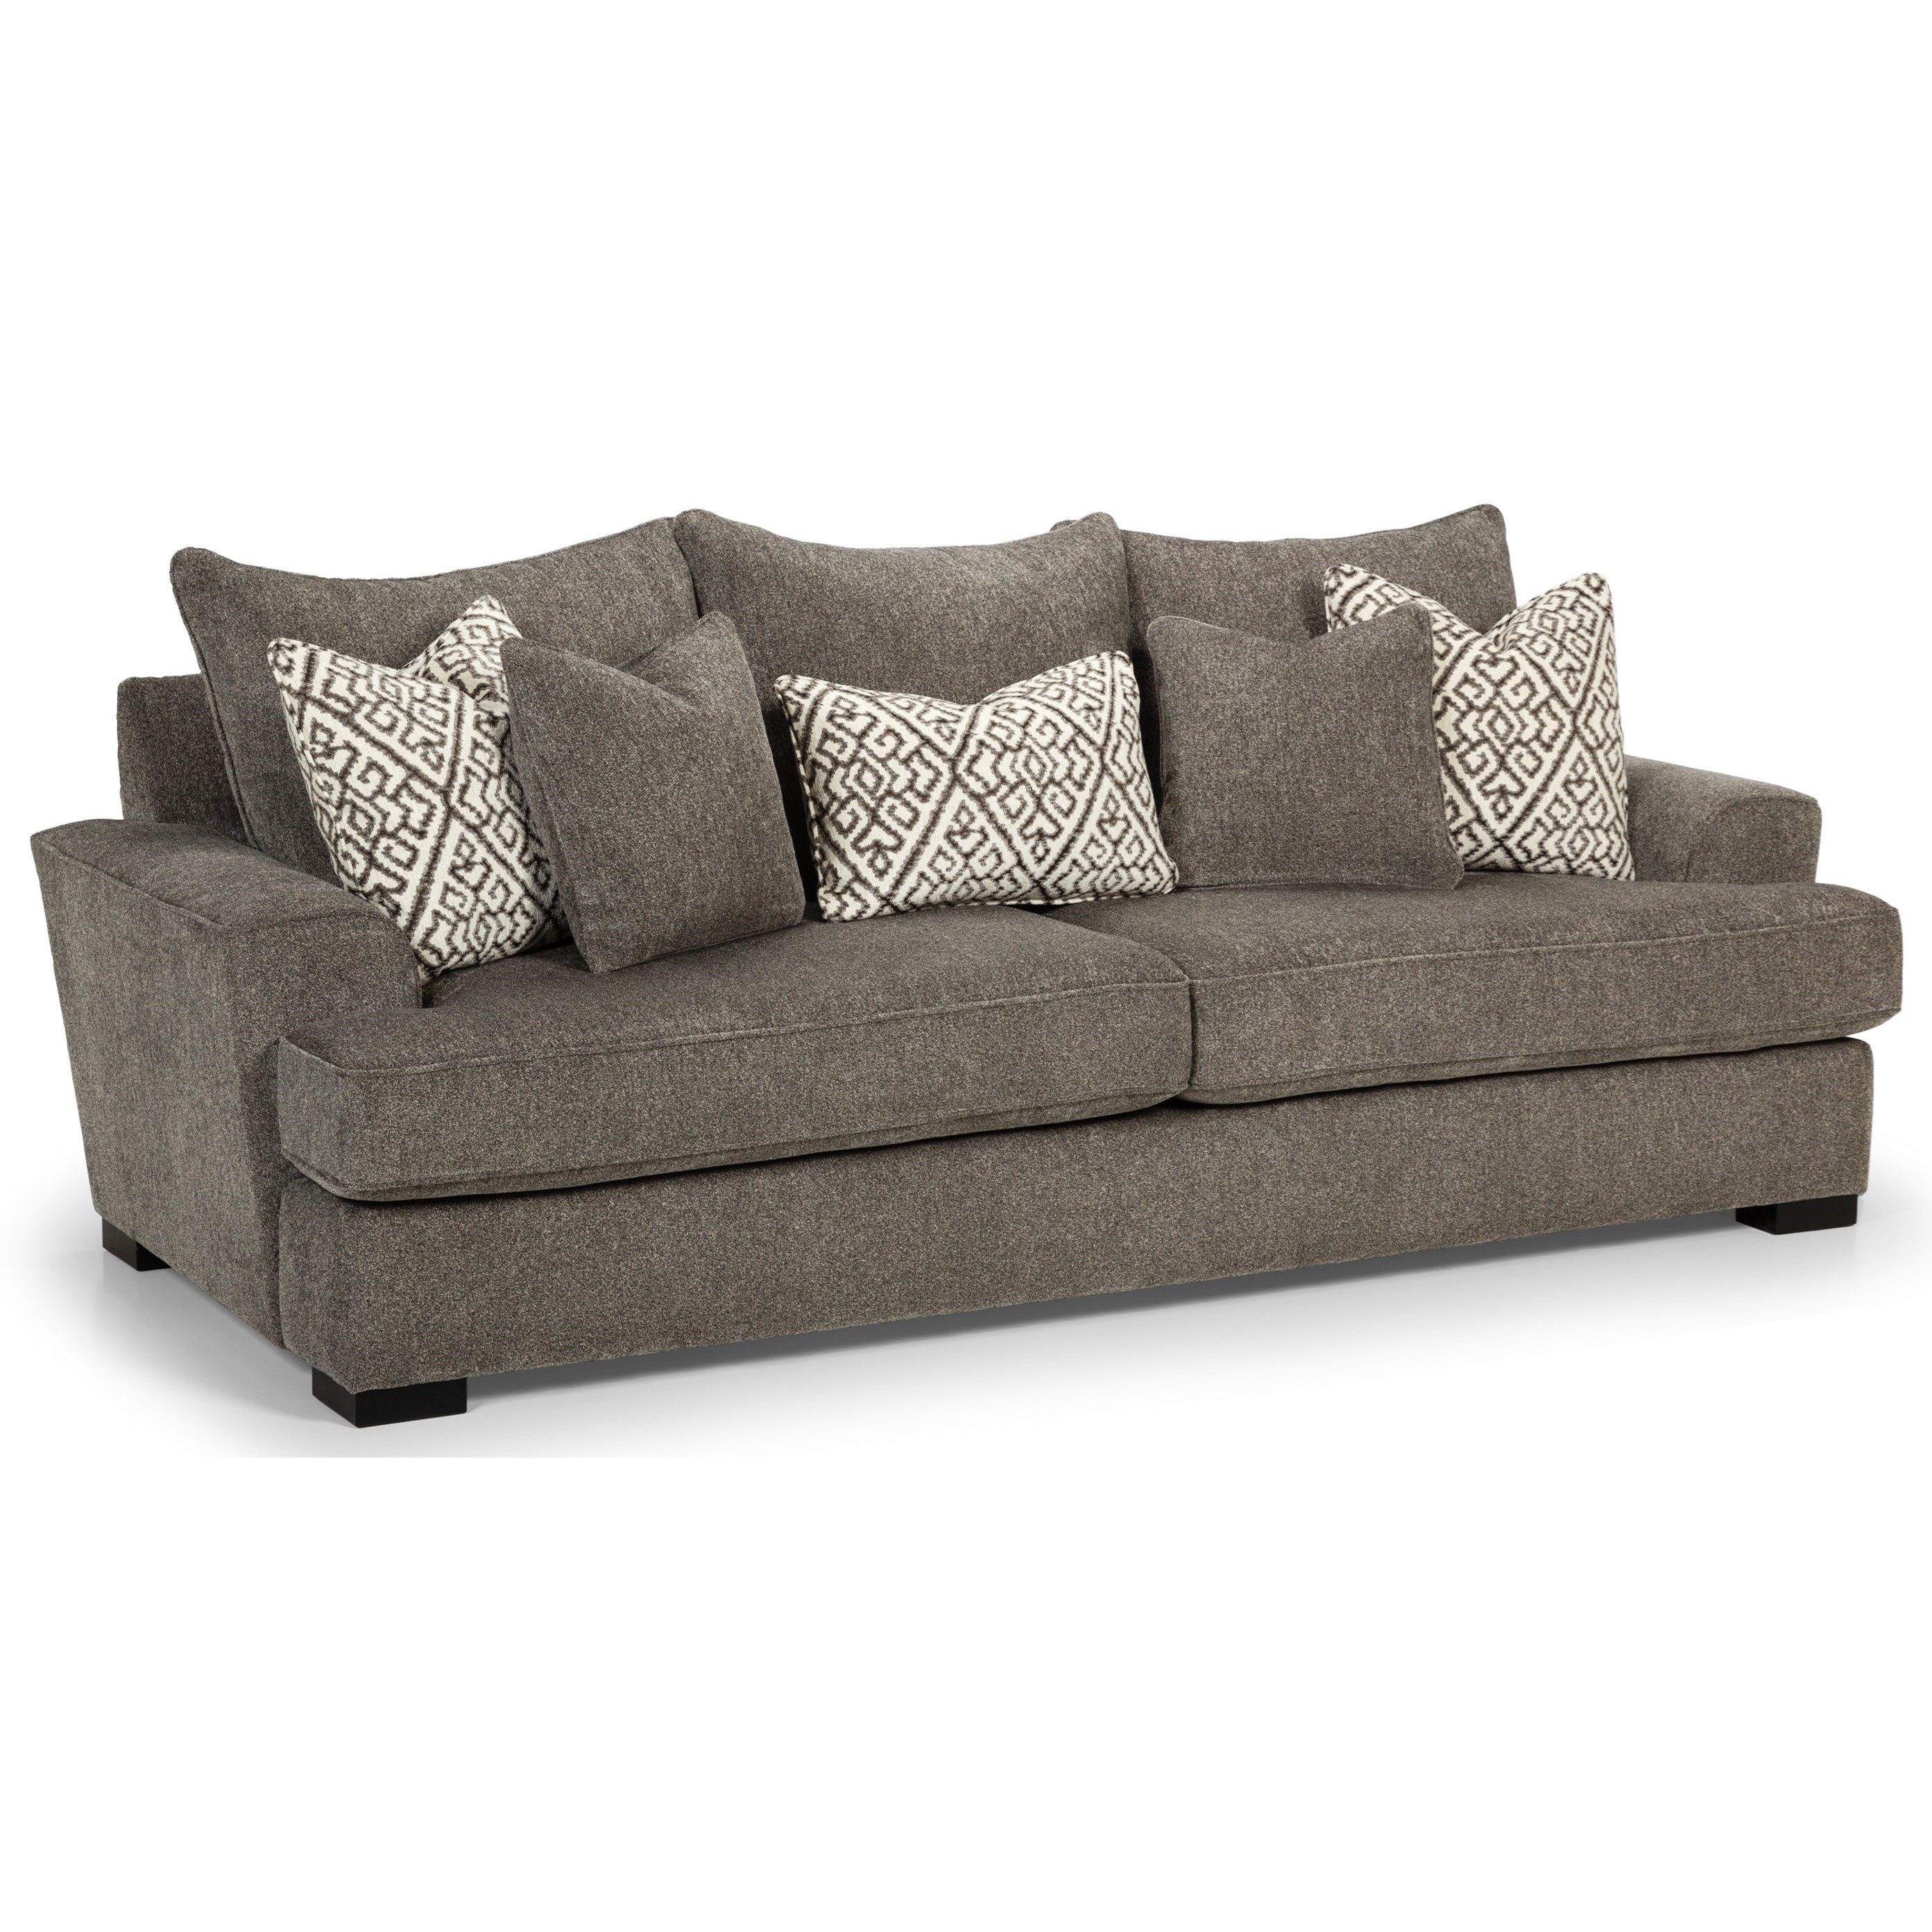 435 Sofa by Stanton at Wilson's Furniture